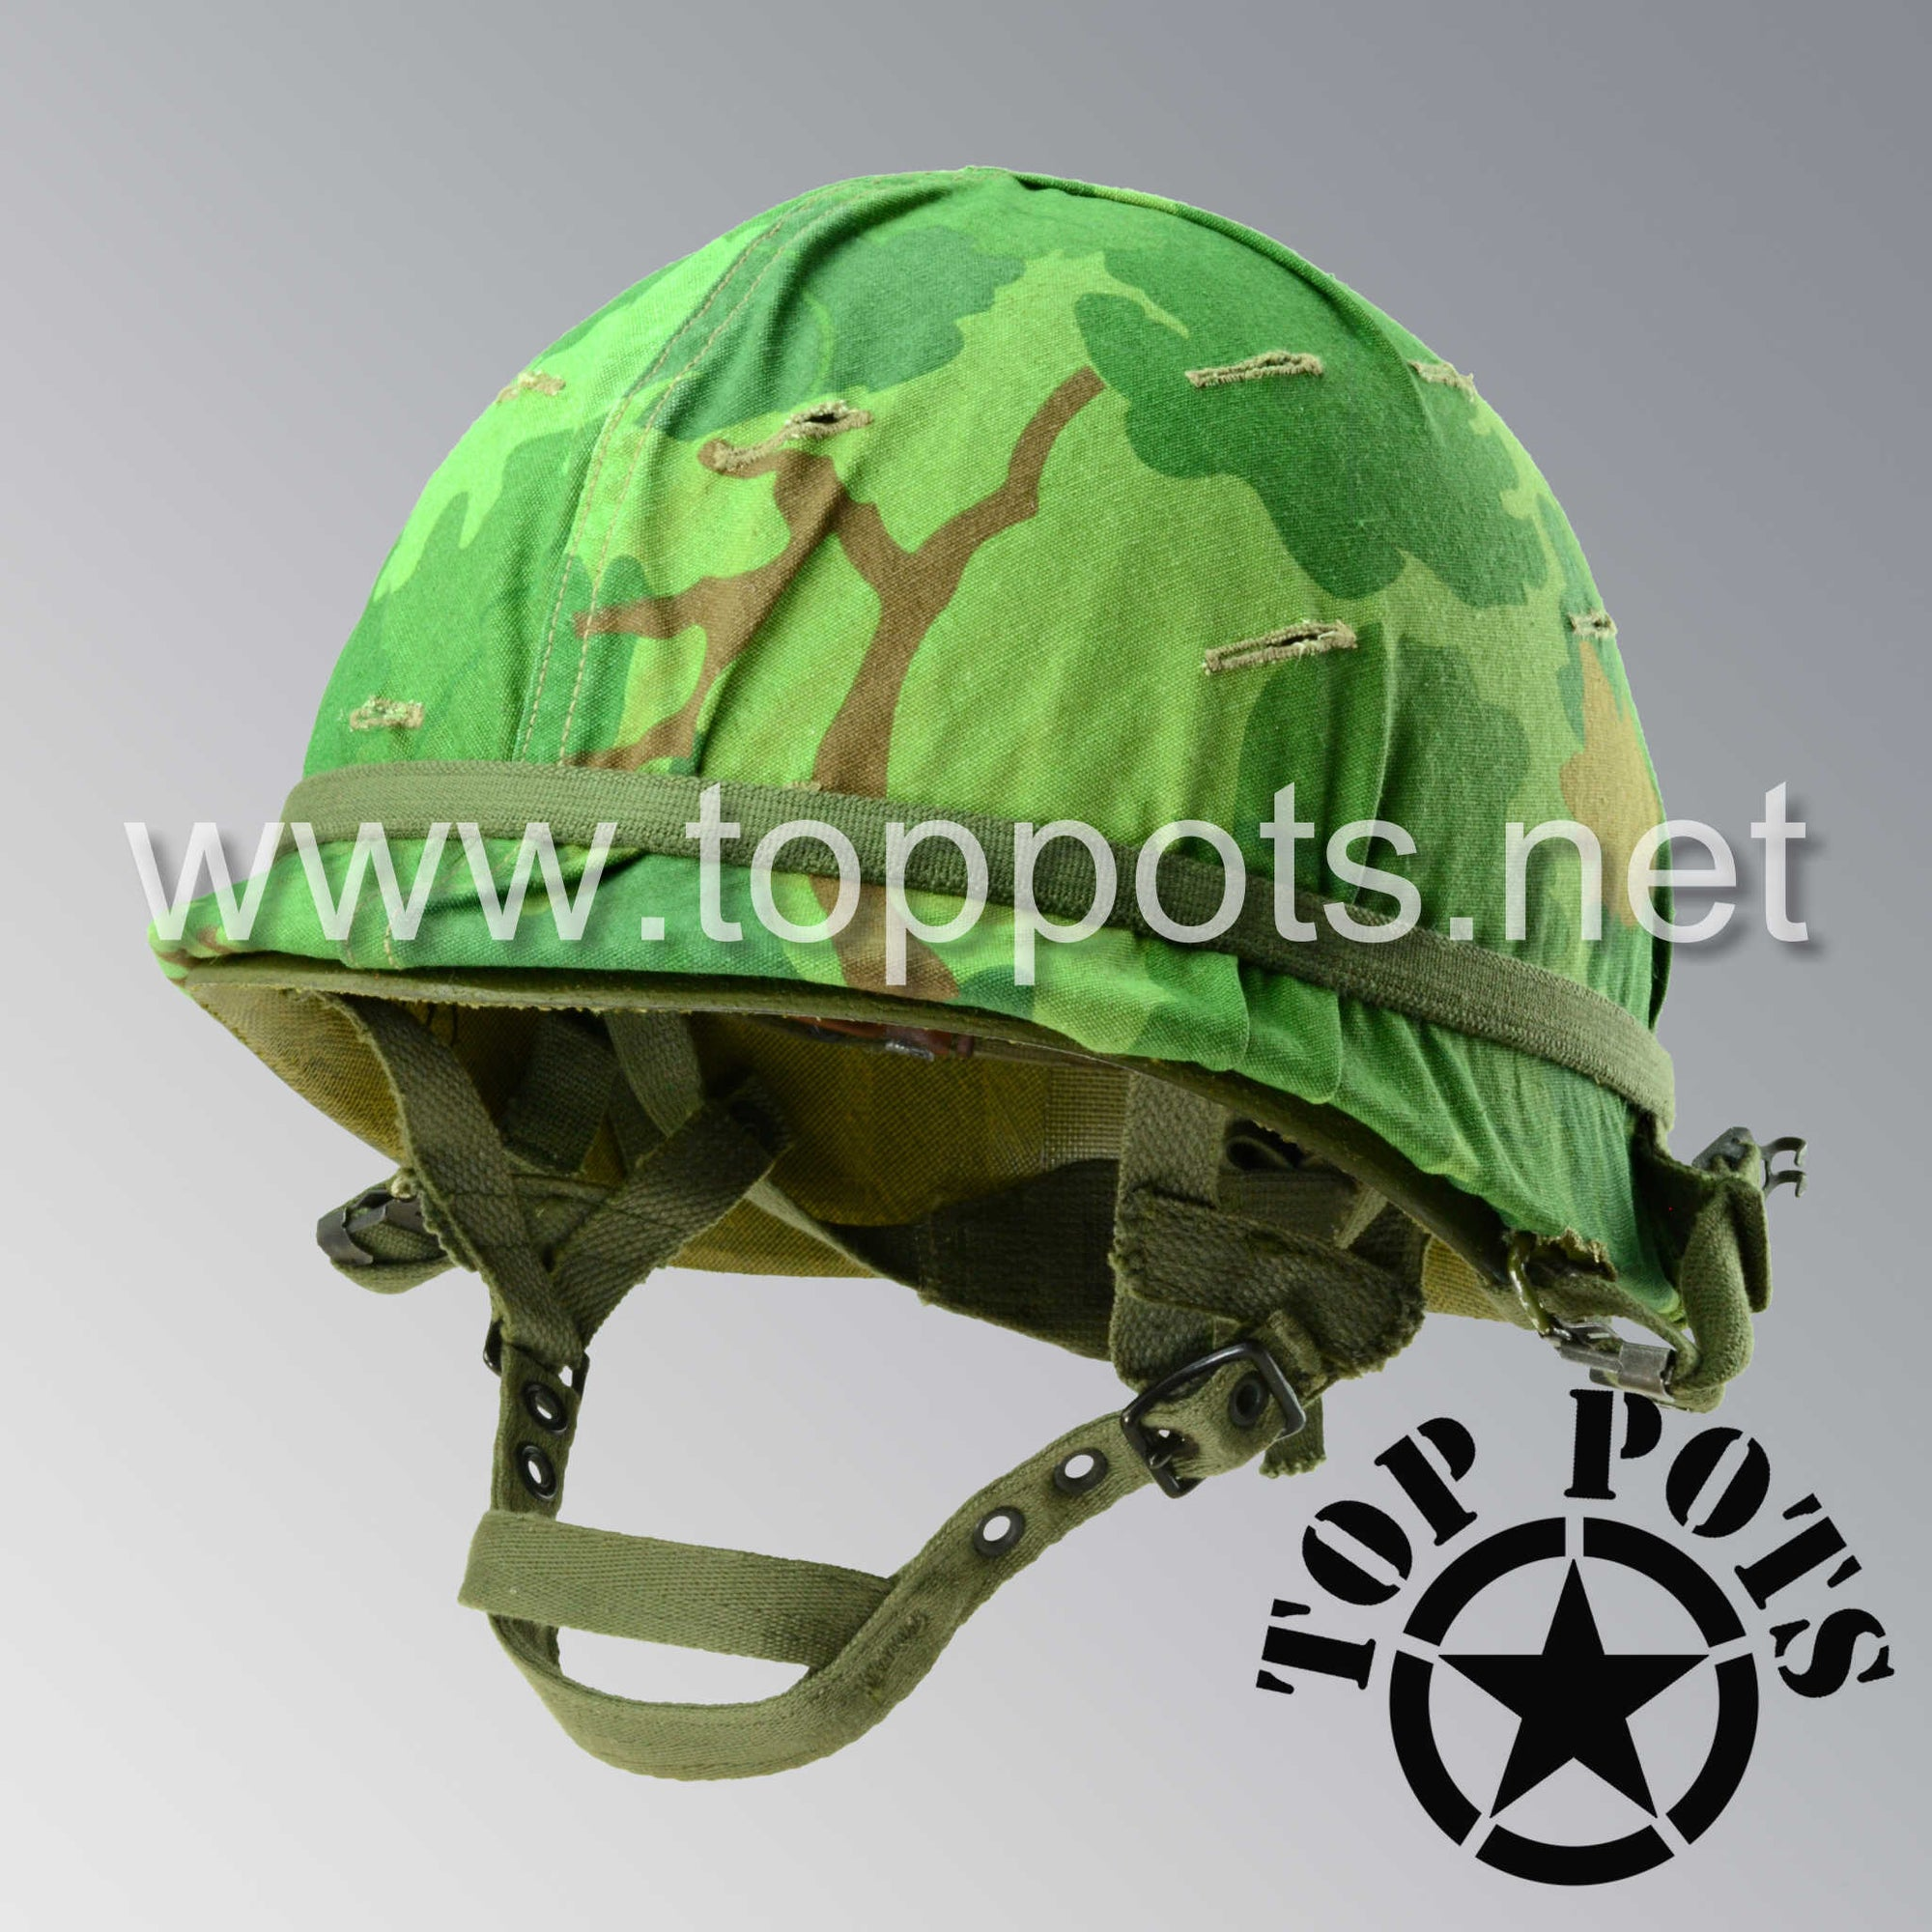 Image 1 of Vietnam War US Army Restored Original P64 M1C Paratrooper Airborne Helmet Swivel Bale Shell and Liner with Mitchell Pattern Camouflage Cover